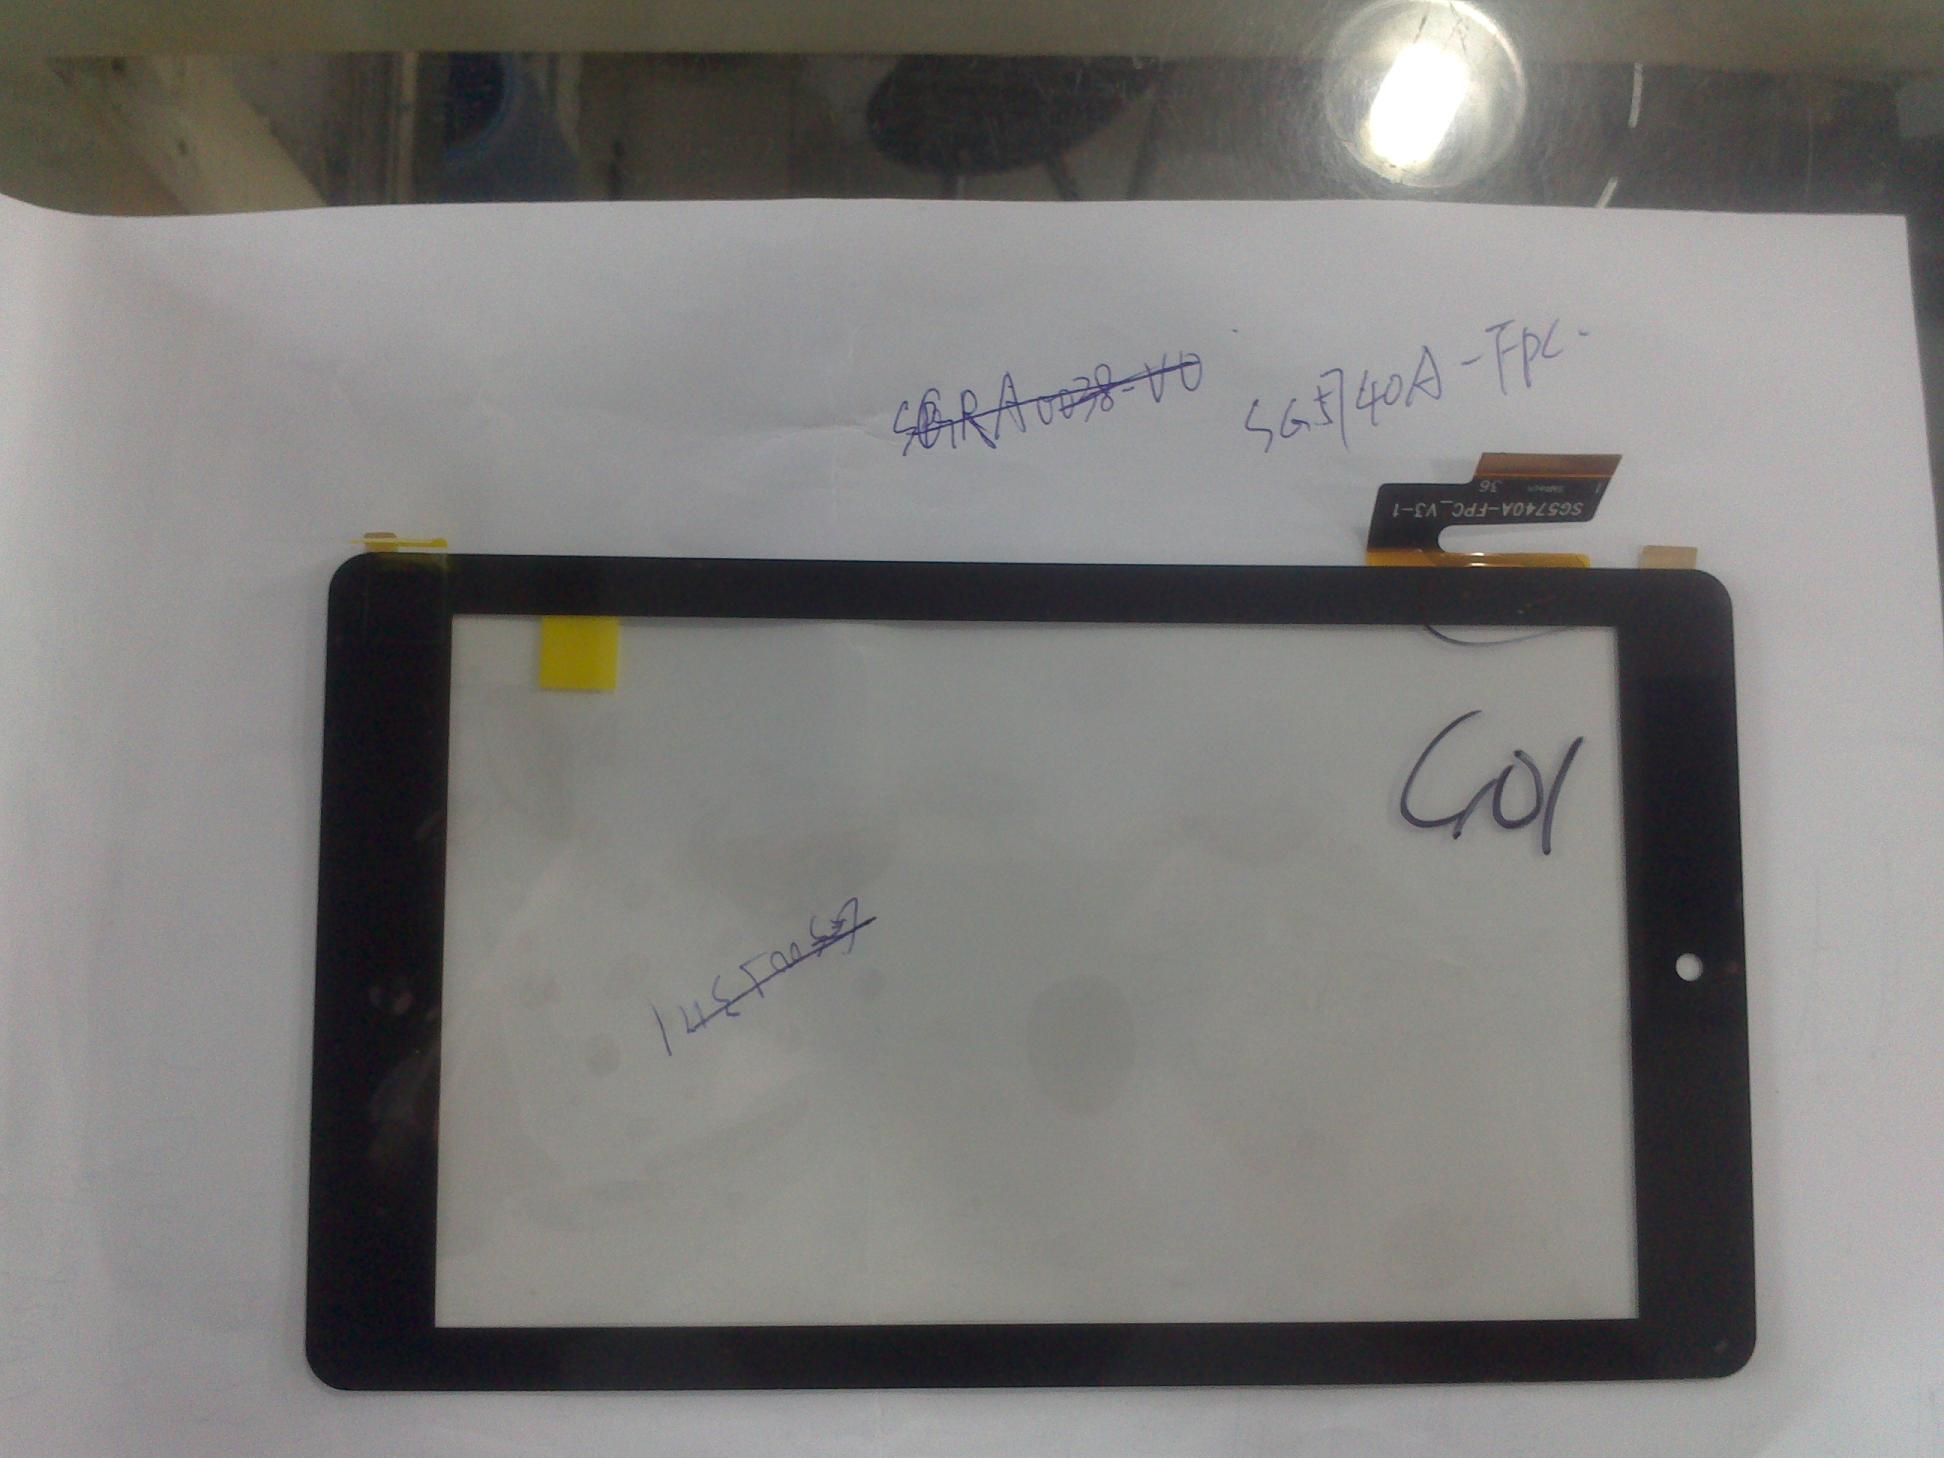 Запчасти для мобильных телефонов 7 inch new handwriting Tablet capacitive touch screen screen screen number is sg5740a/fpc_v3/1 SG5740A-FPC_V3-1 new 8 inch lcd screen matrix bw8022d for teclast x80 power x80 pro tablet lcd screen free shipping